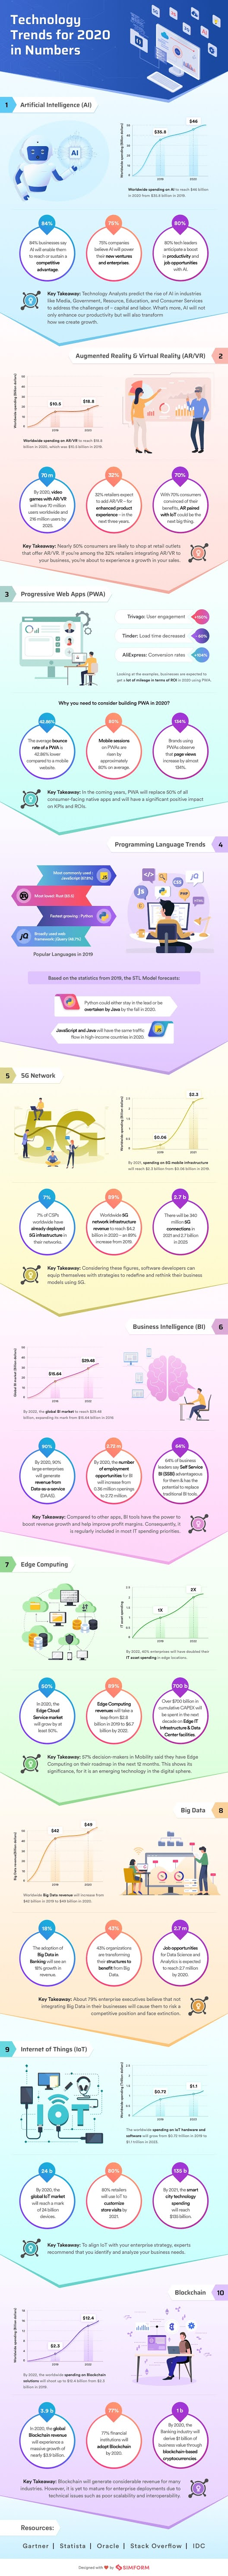 Technology Trends for 2020 in Numbers #infographic